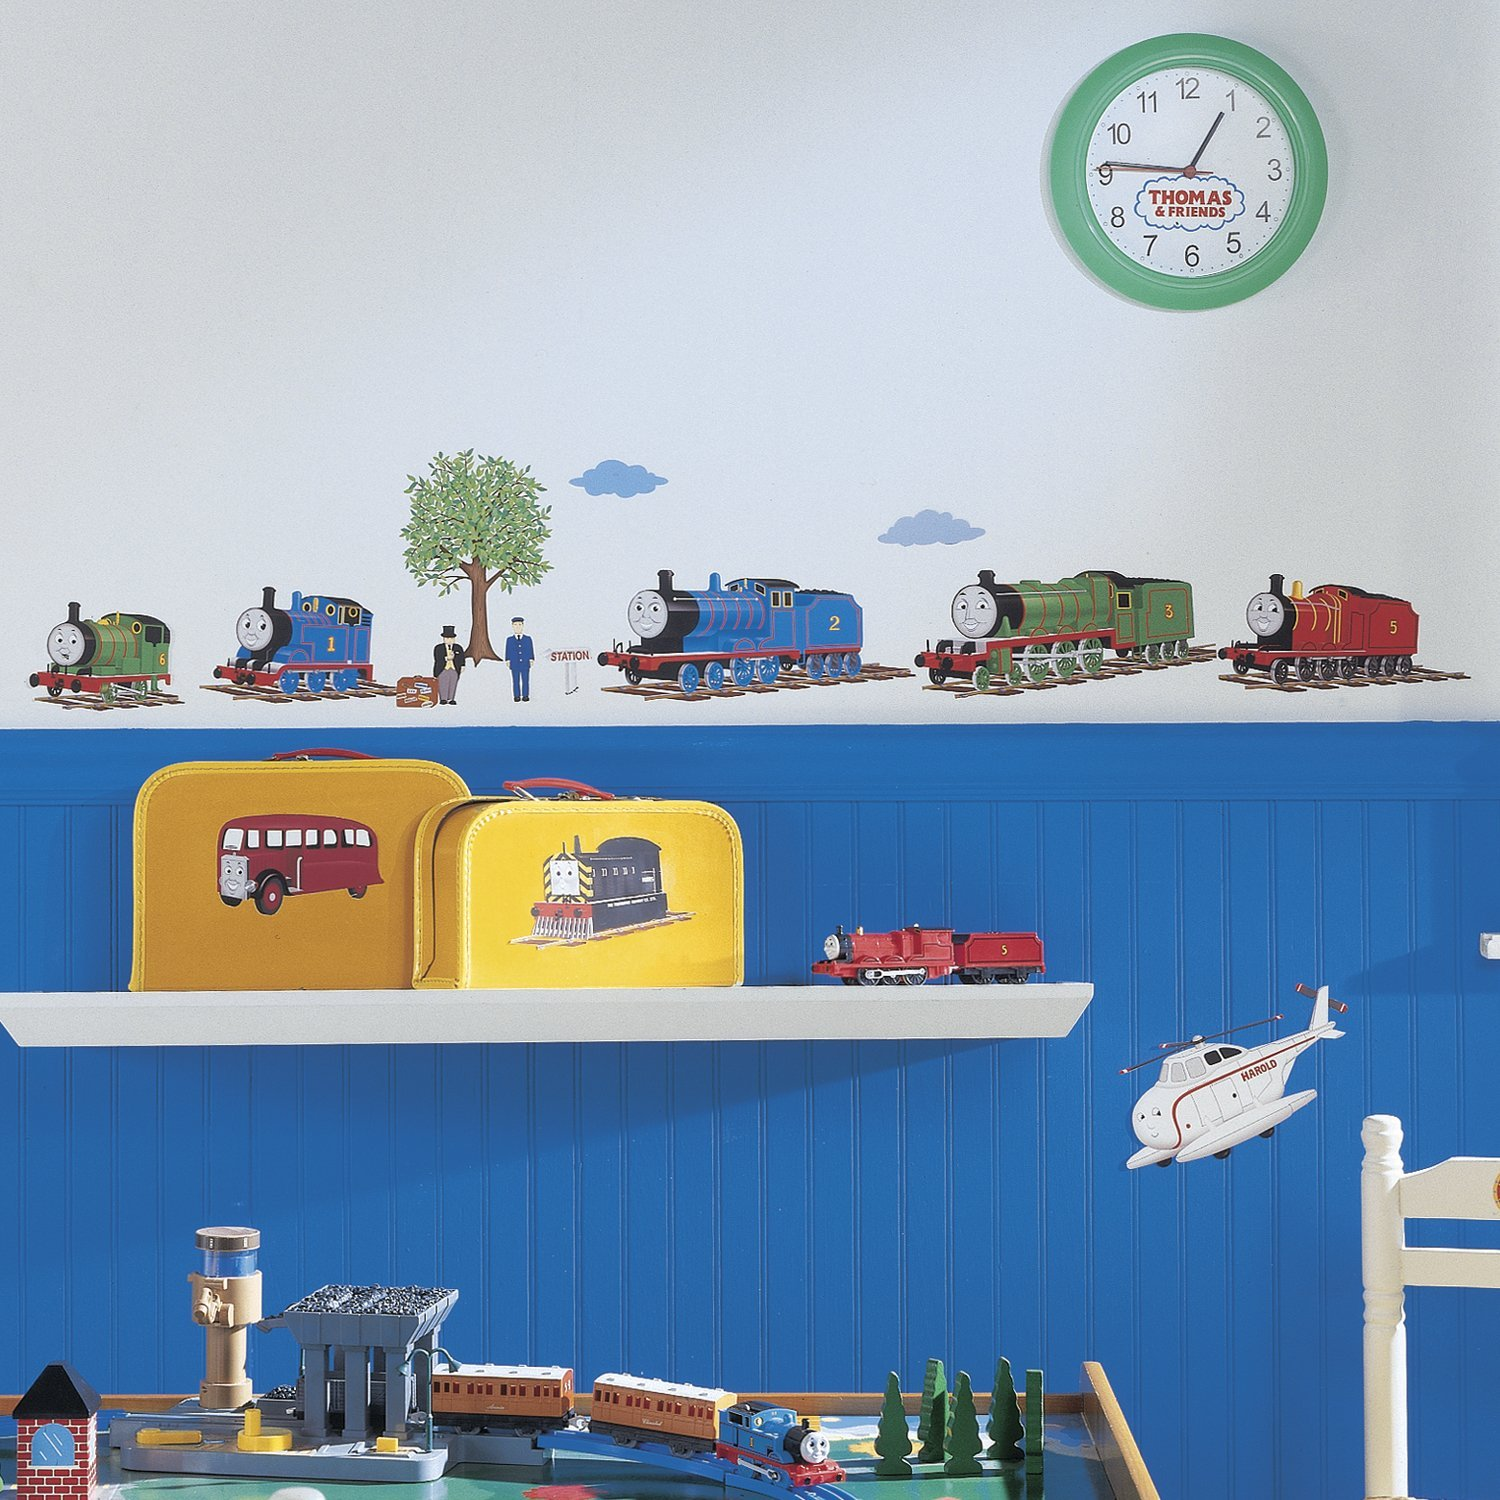 thomas-the-train-wall-decals.jpg